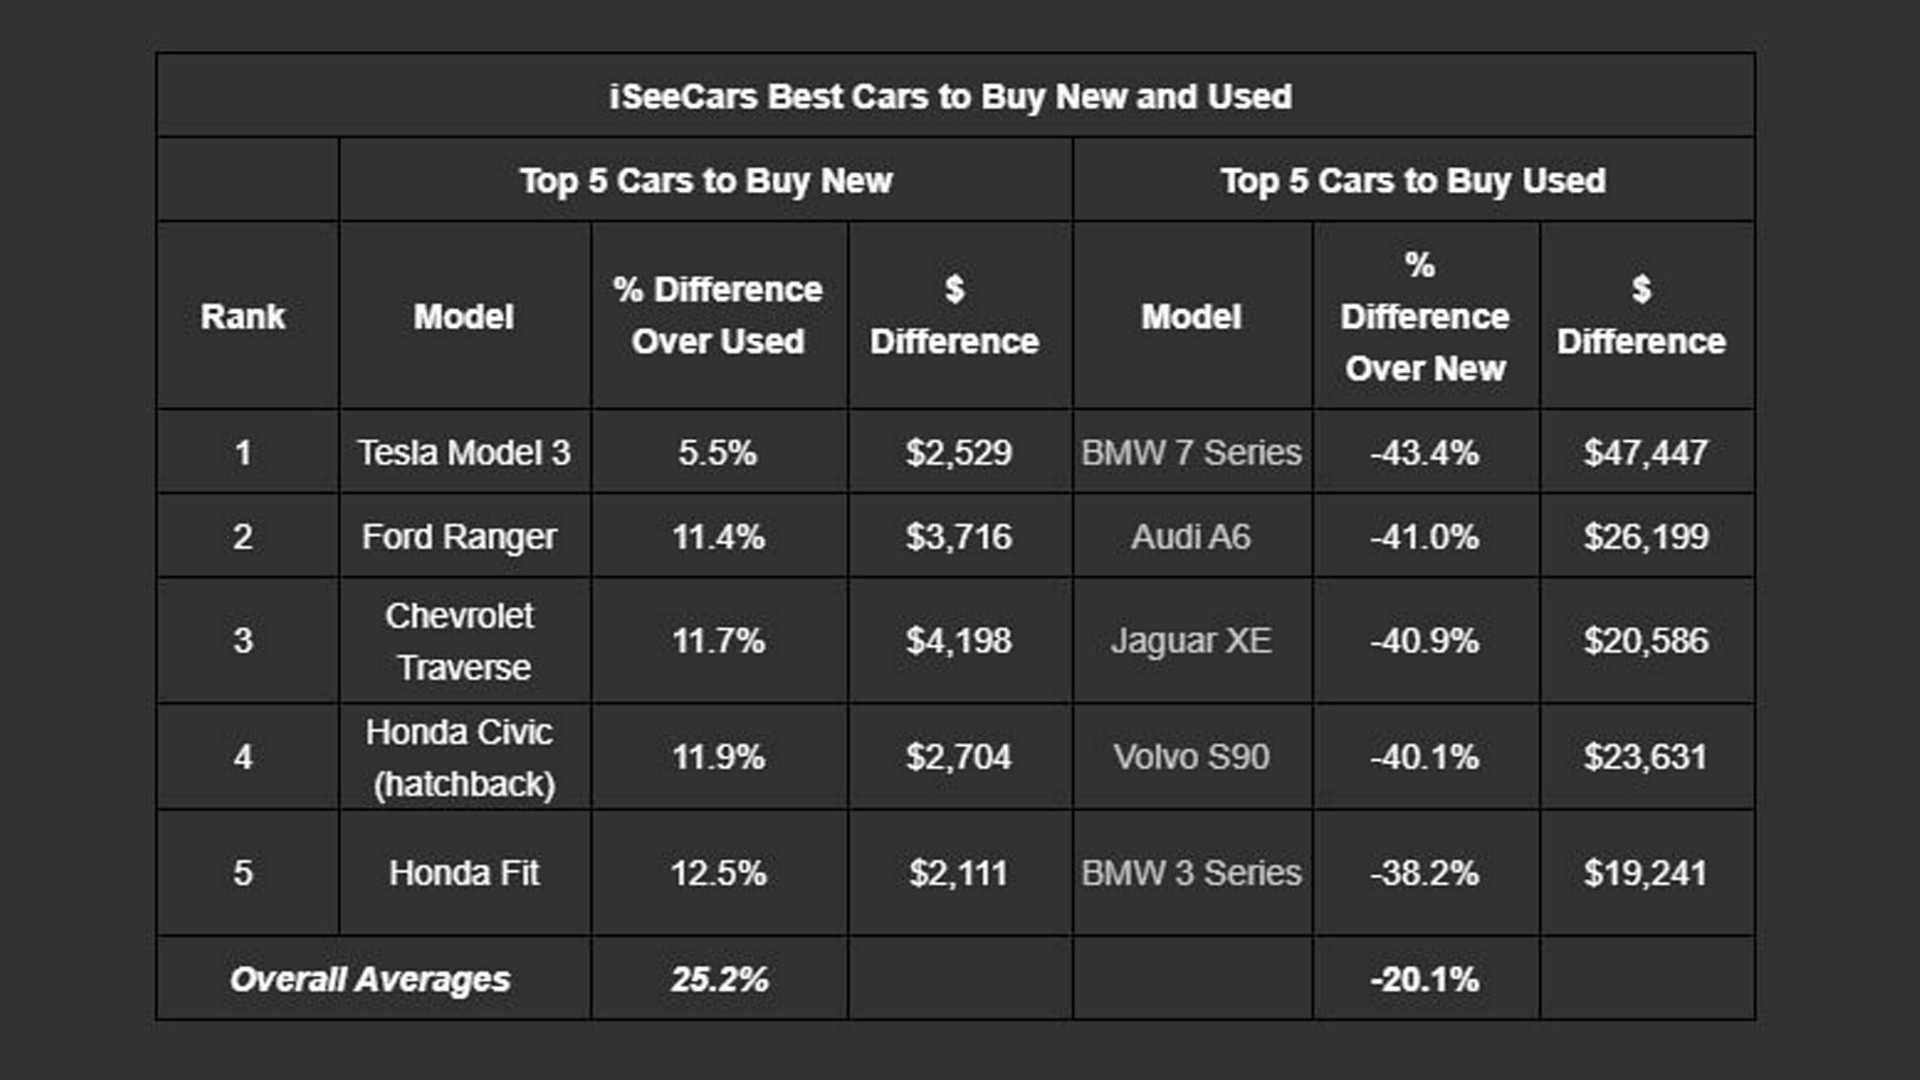 With Lowest Depreciation, Tesla Model 3 Is Best Car To Buy New